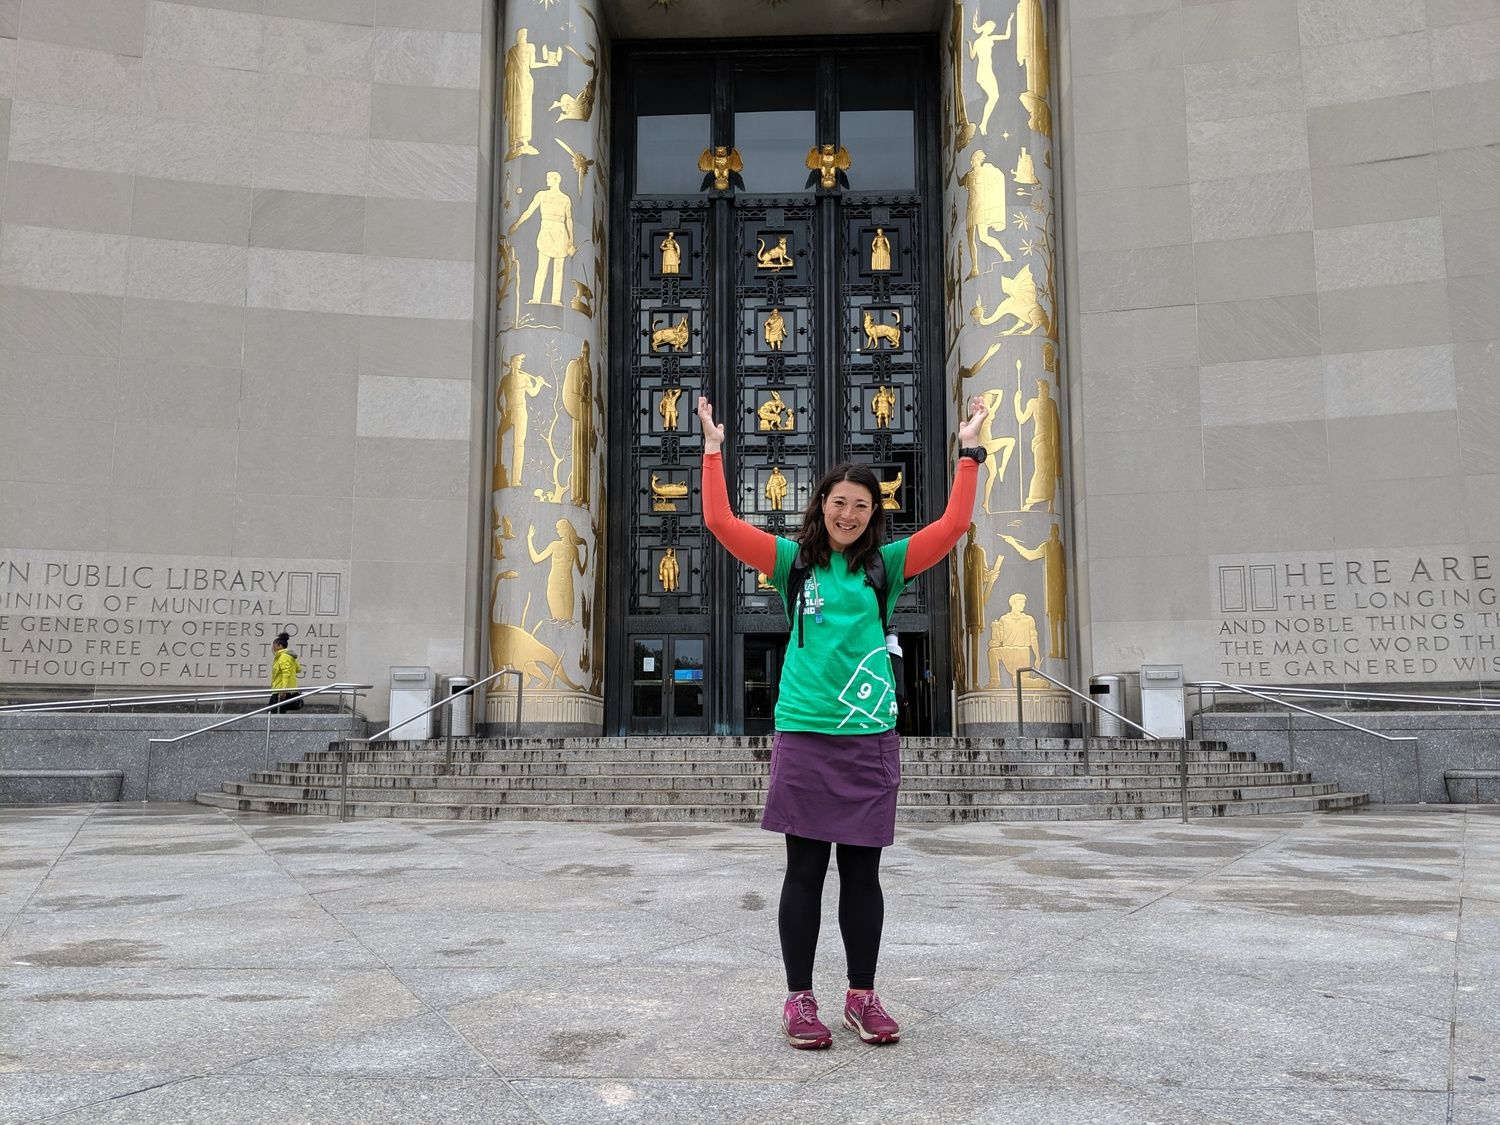 Liz Thomas wearing the Lululemon Wunder Under tights standing in front of the library in New York City.